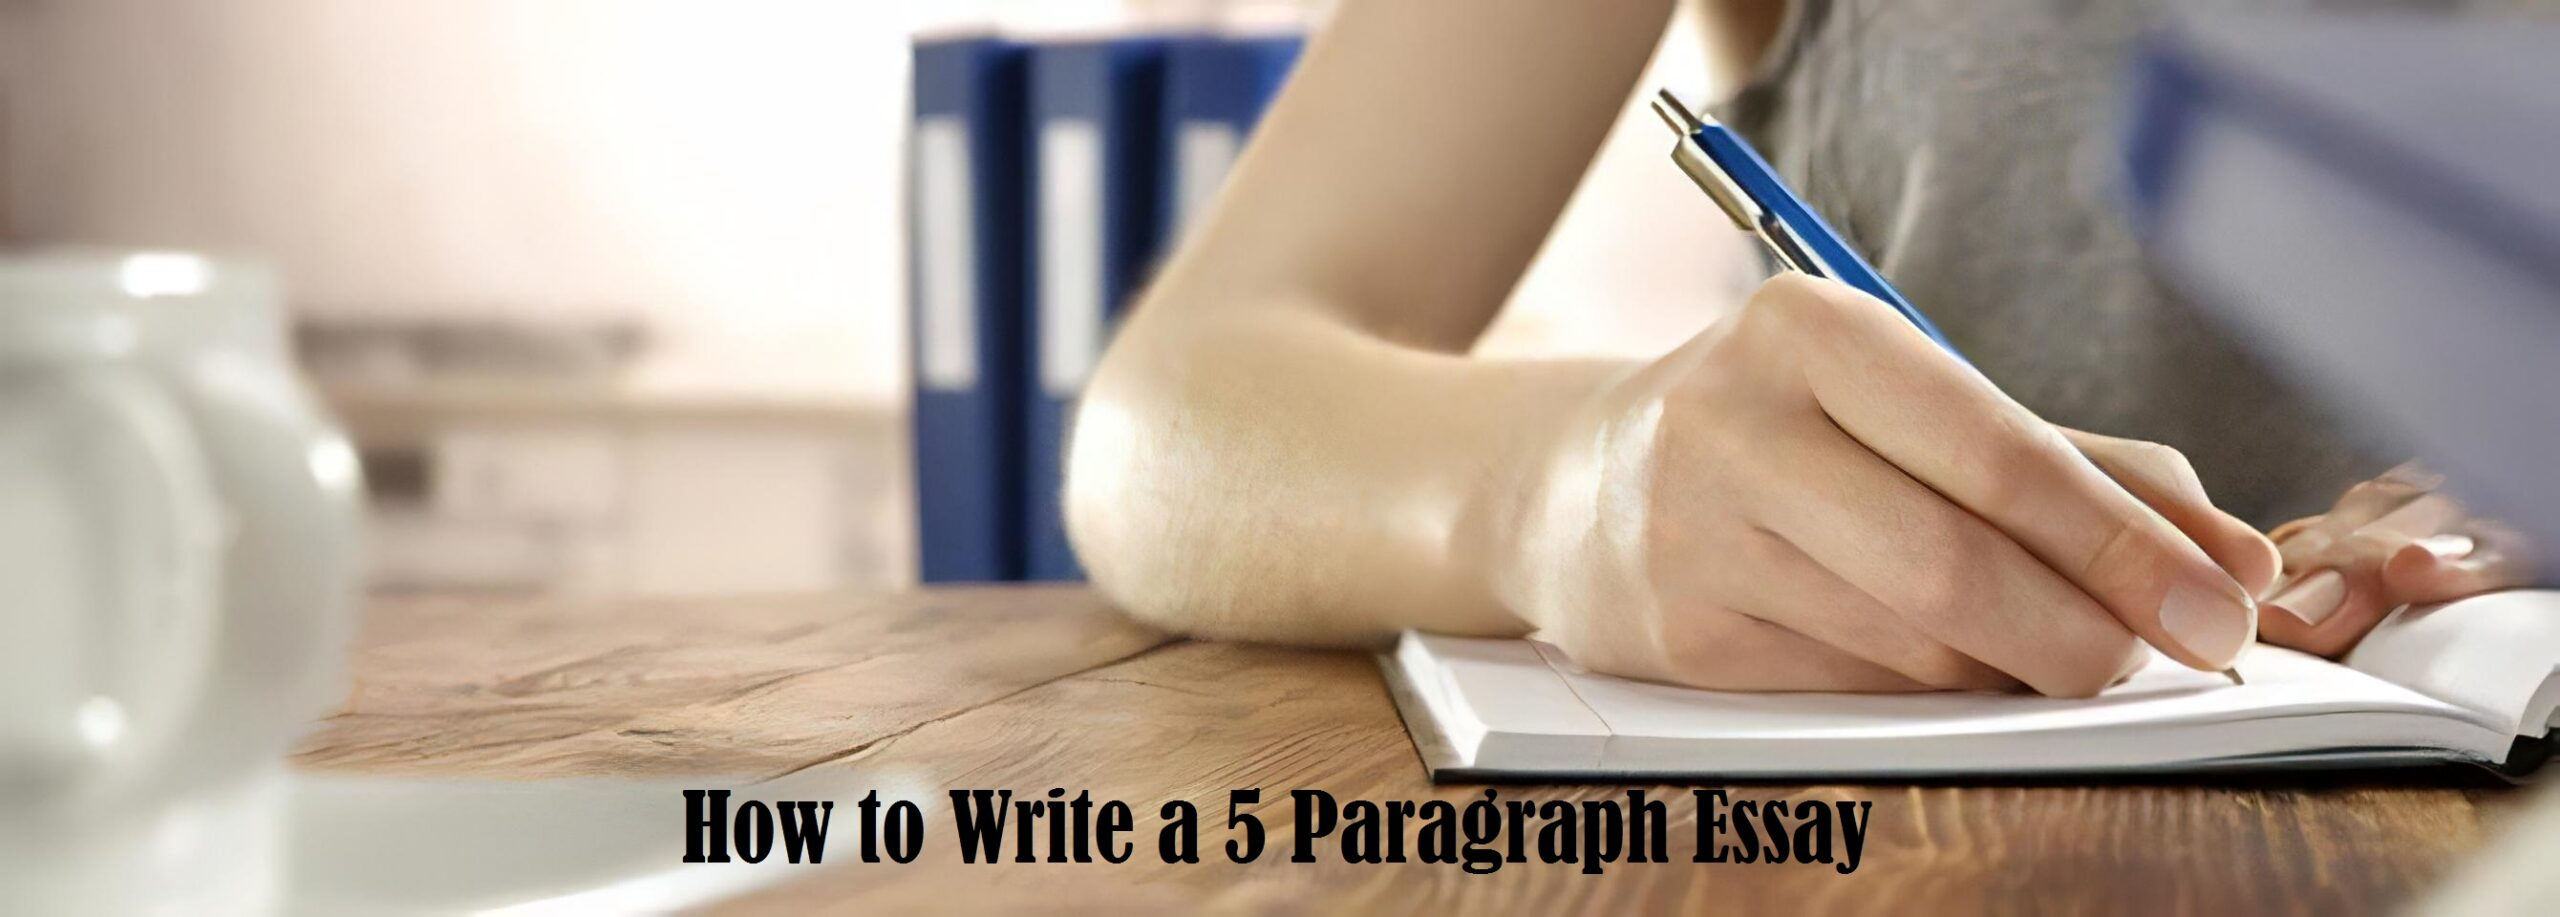 Girl Write 5 Paragraph Essay